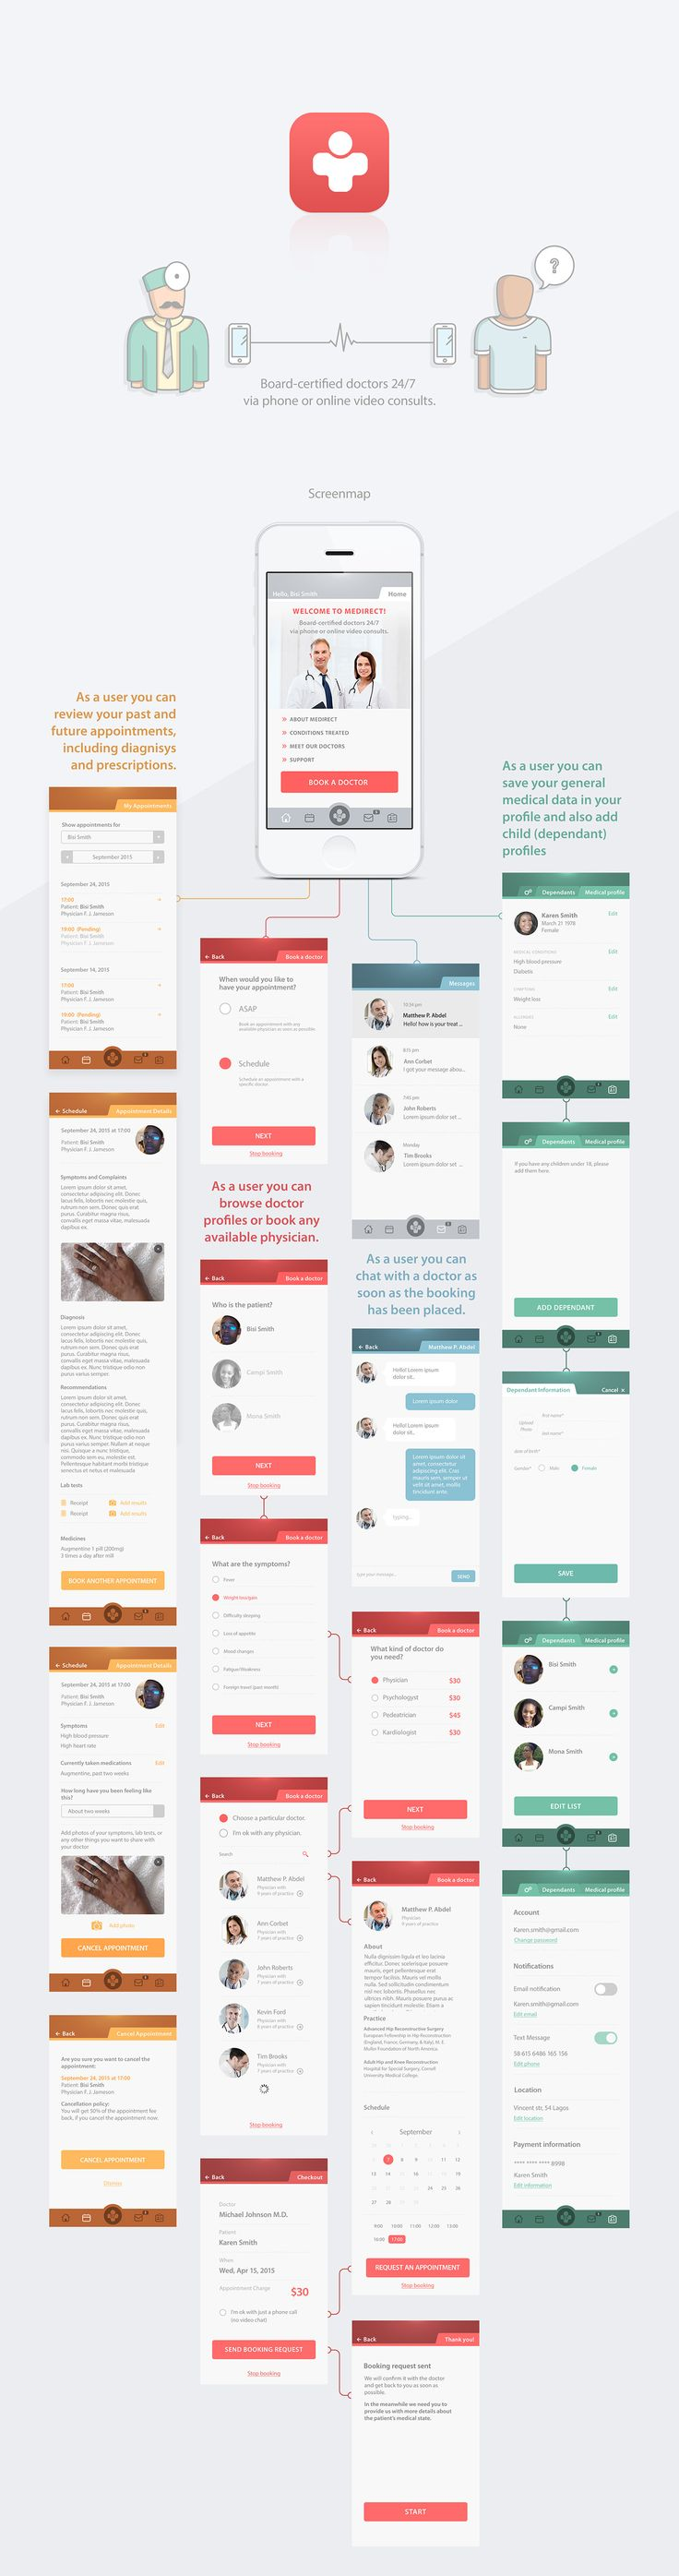 Medical app design. Medirect - connecting patients in Nigeria to British and US doctors.VIsit:www.galitskydesign.com